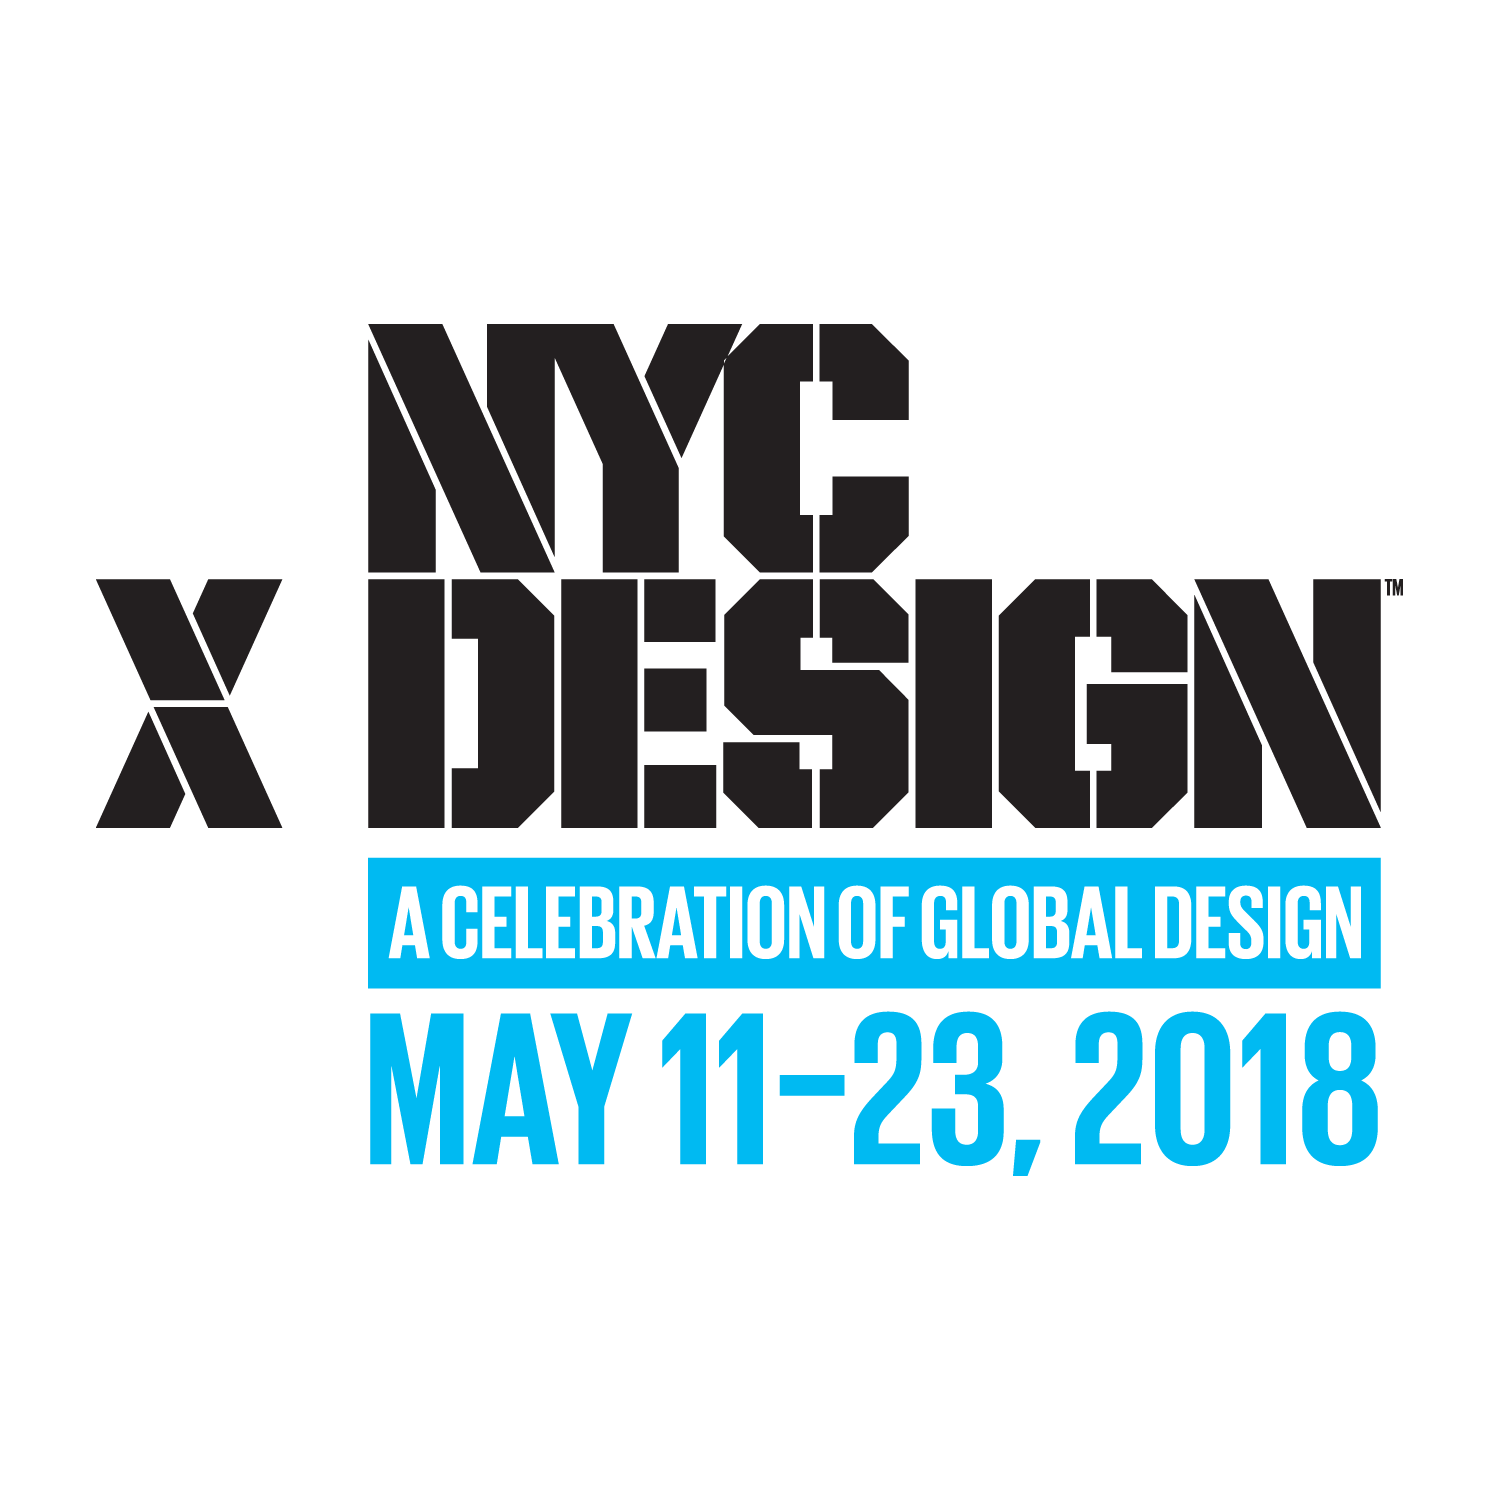 NYCXDESIGN_Logos-2018-WHITE-square2-transparent